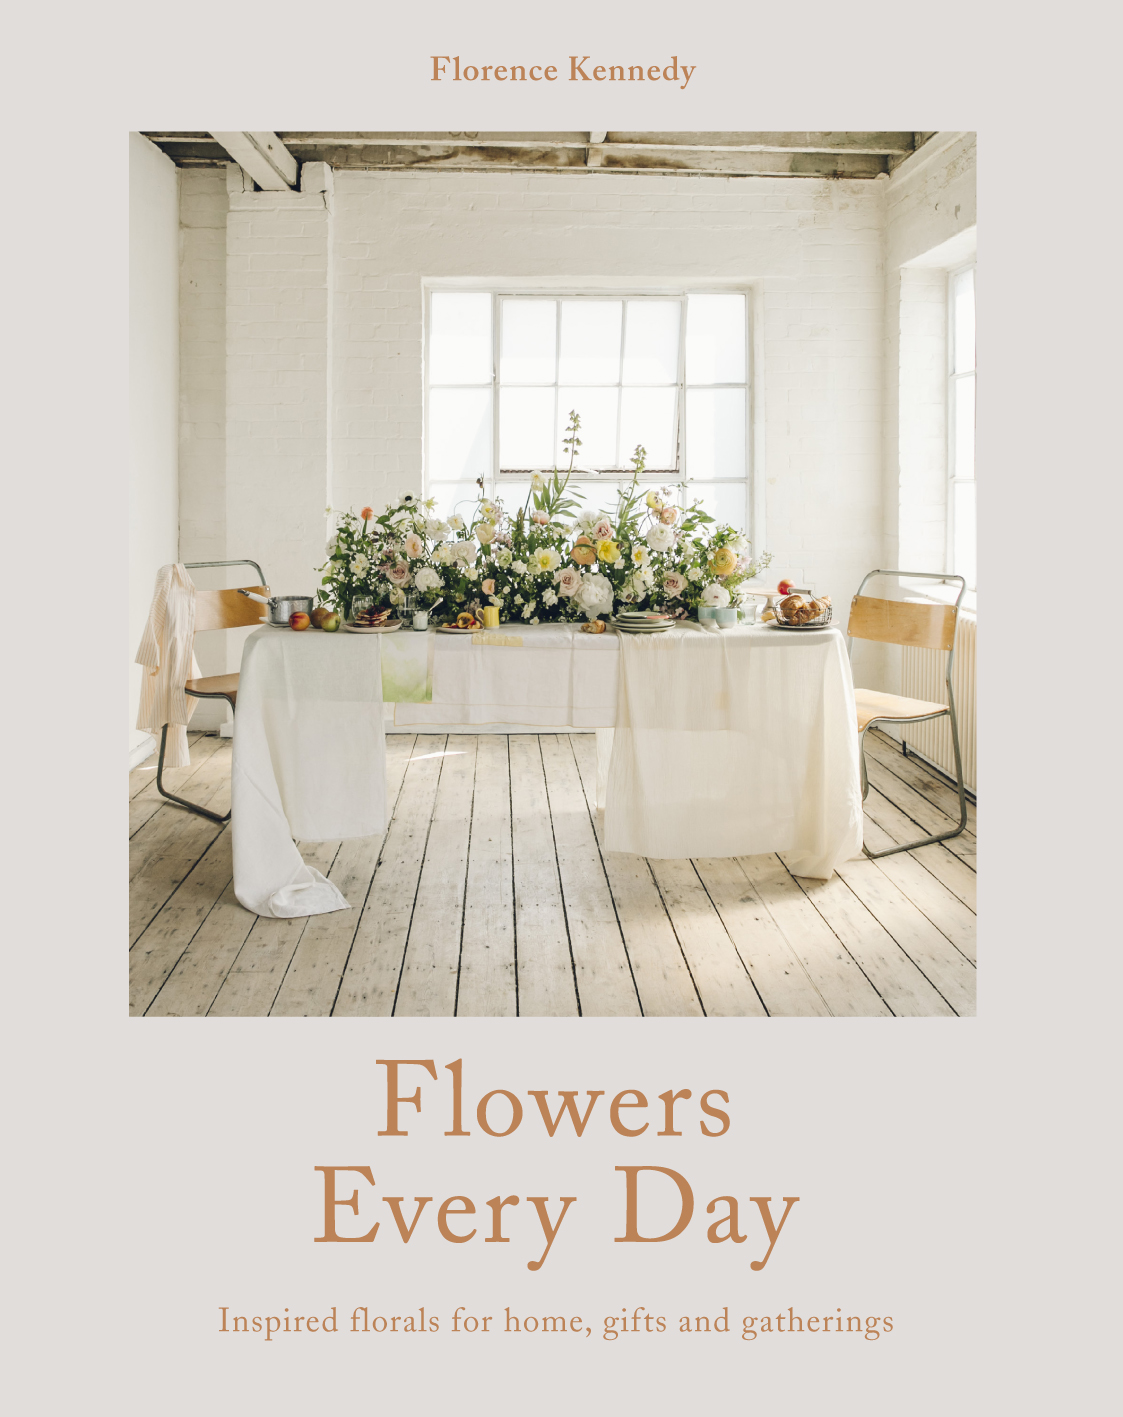 Flowers Every Day by Florence Kennedy is published by Pavilion. Photographs by India Hobson